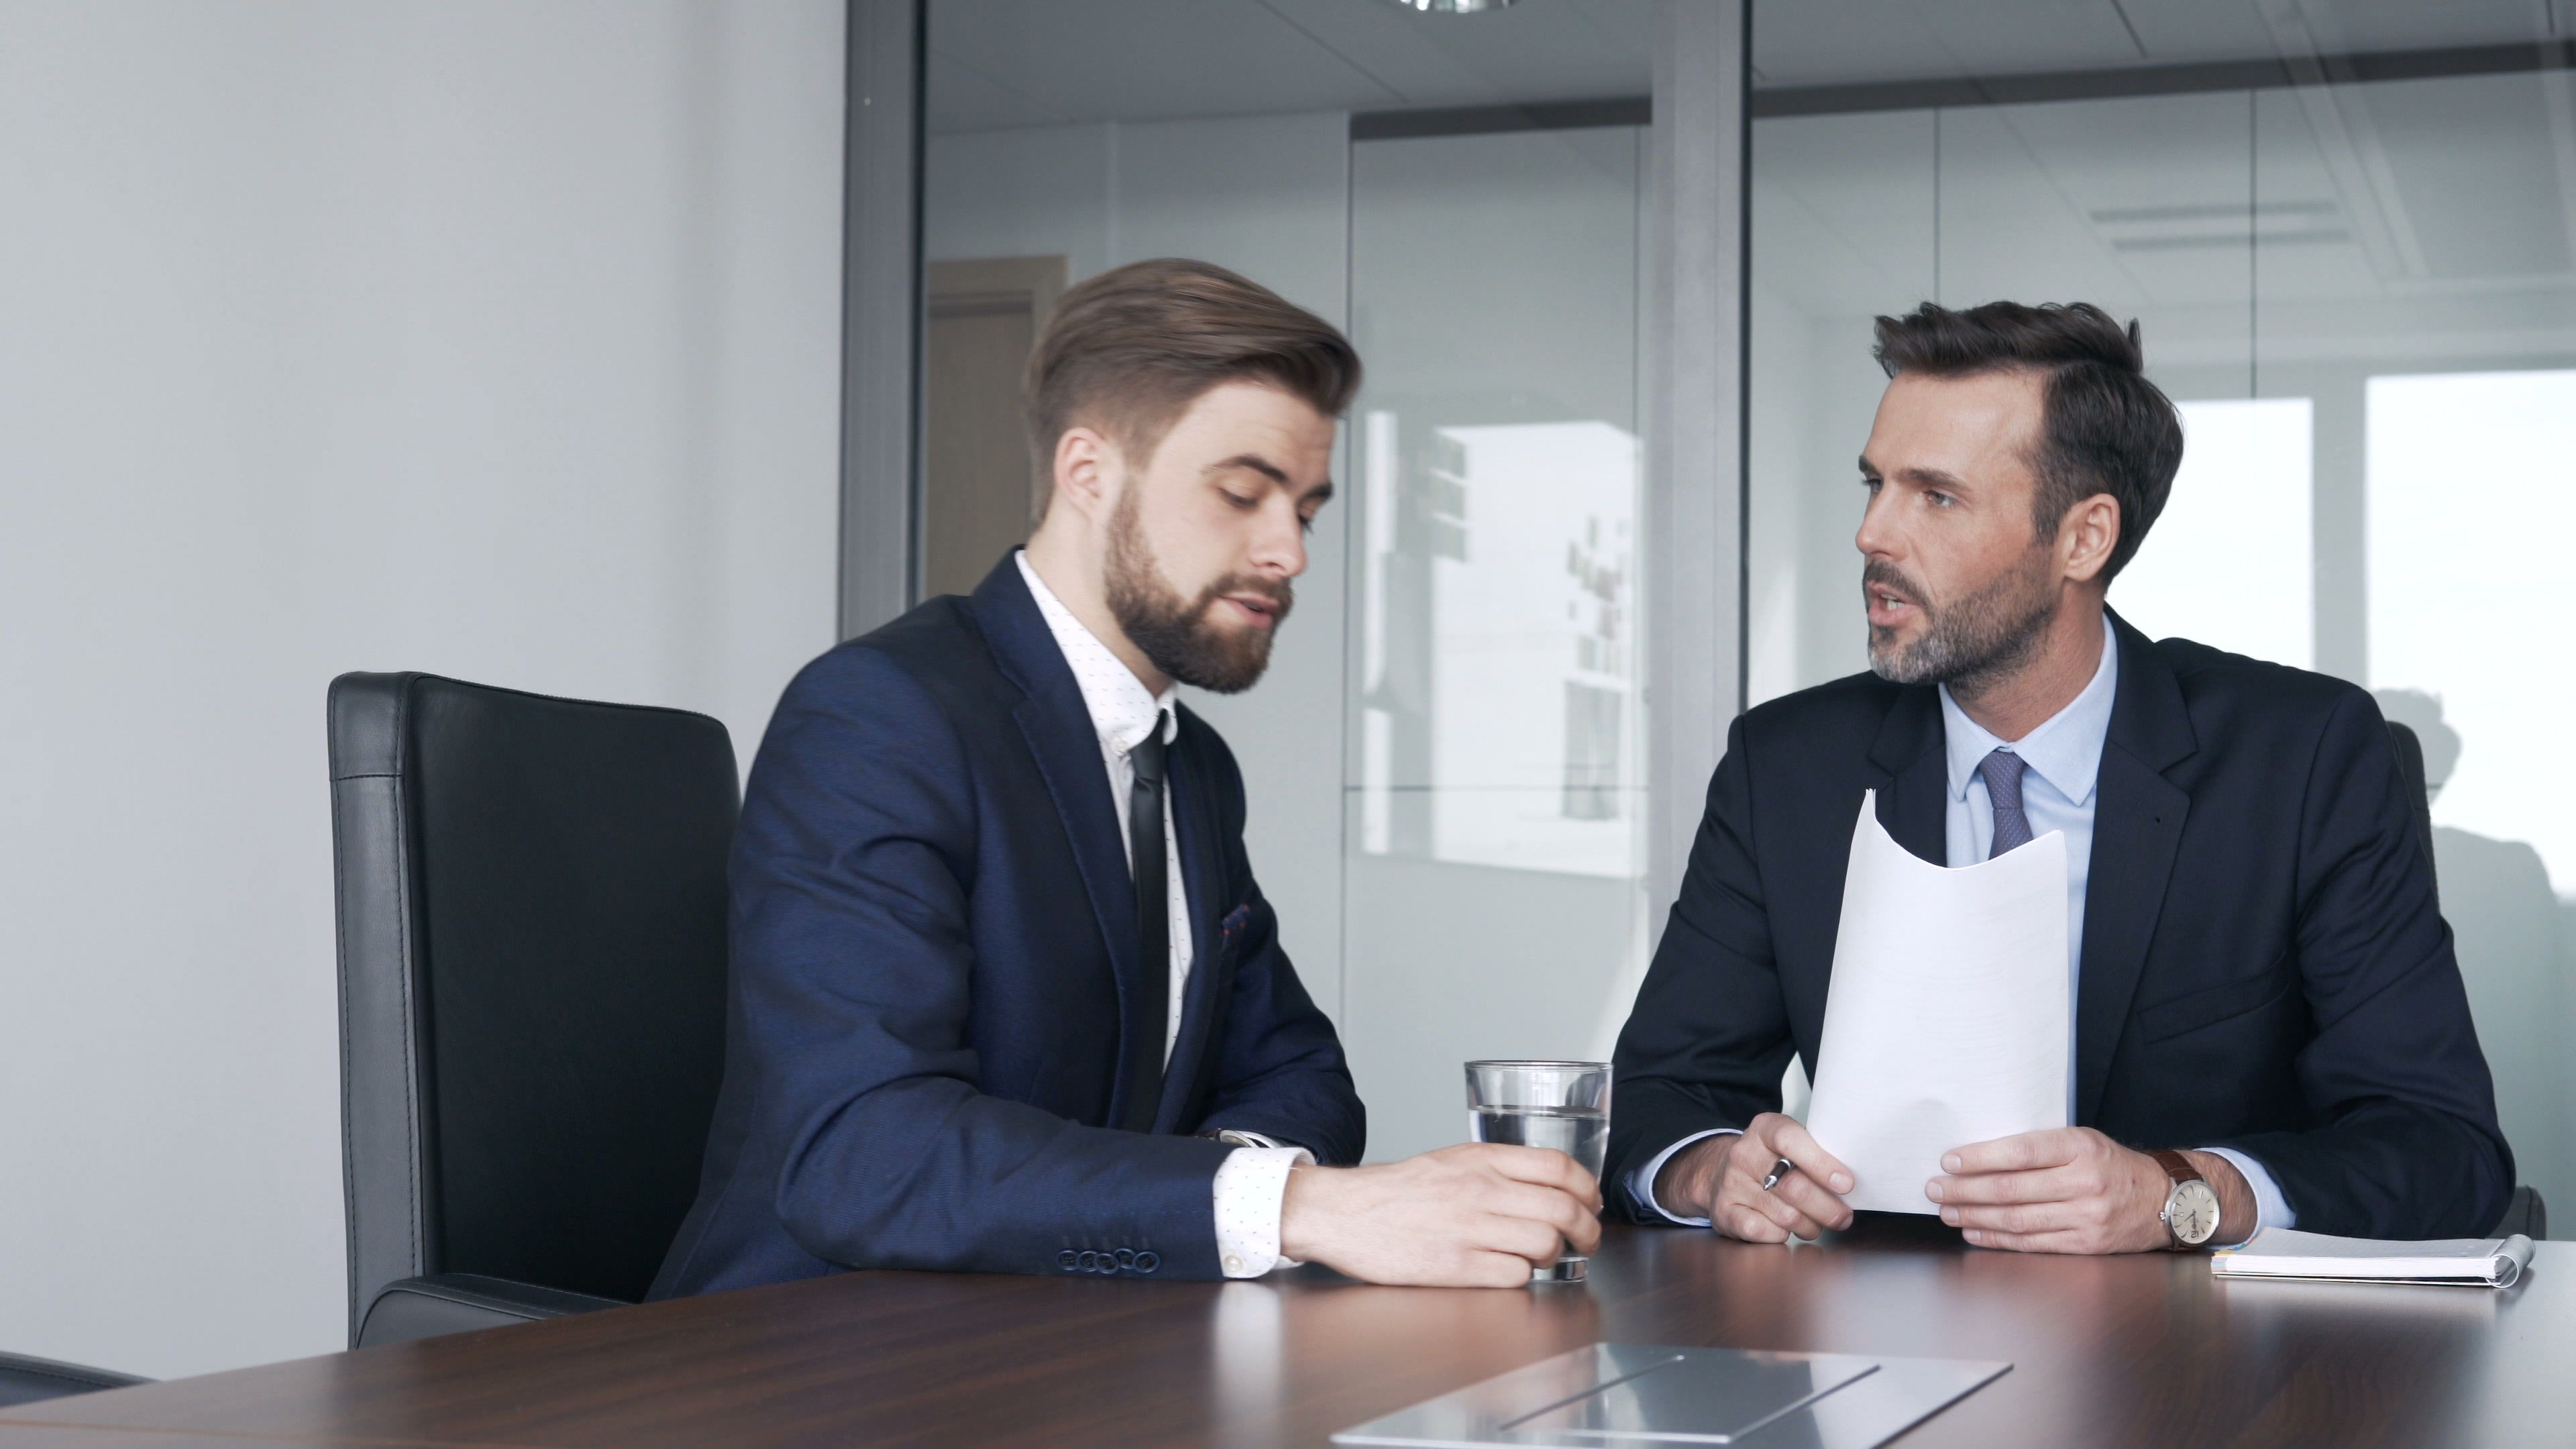 Two Businessmen Talking During Business Meeting At Corporate